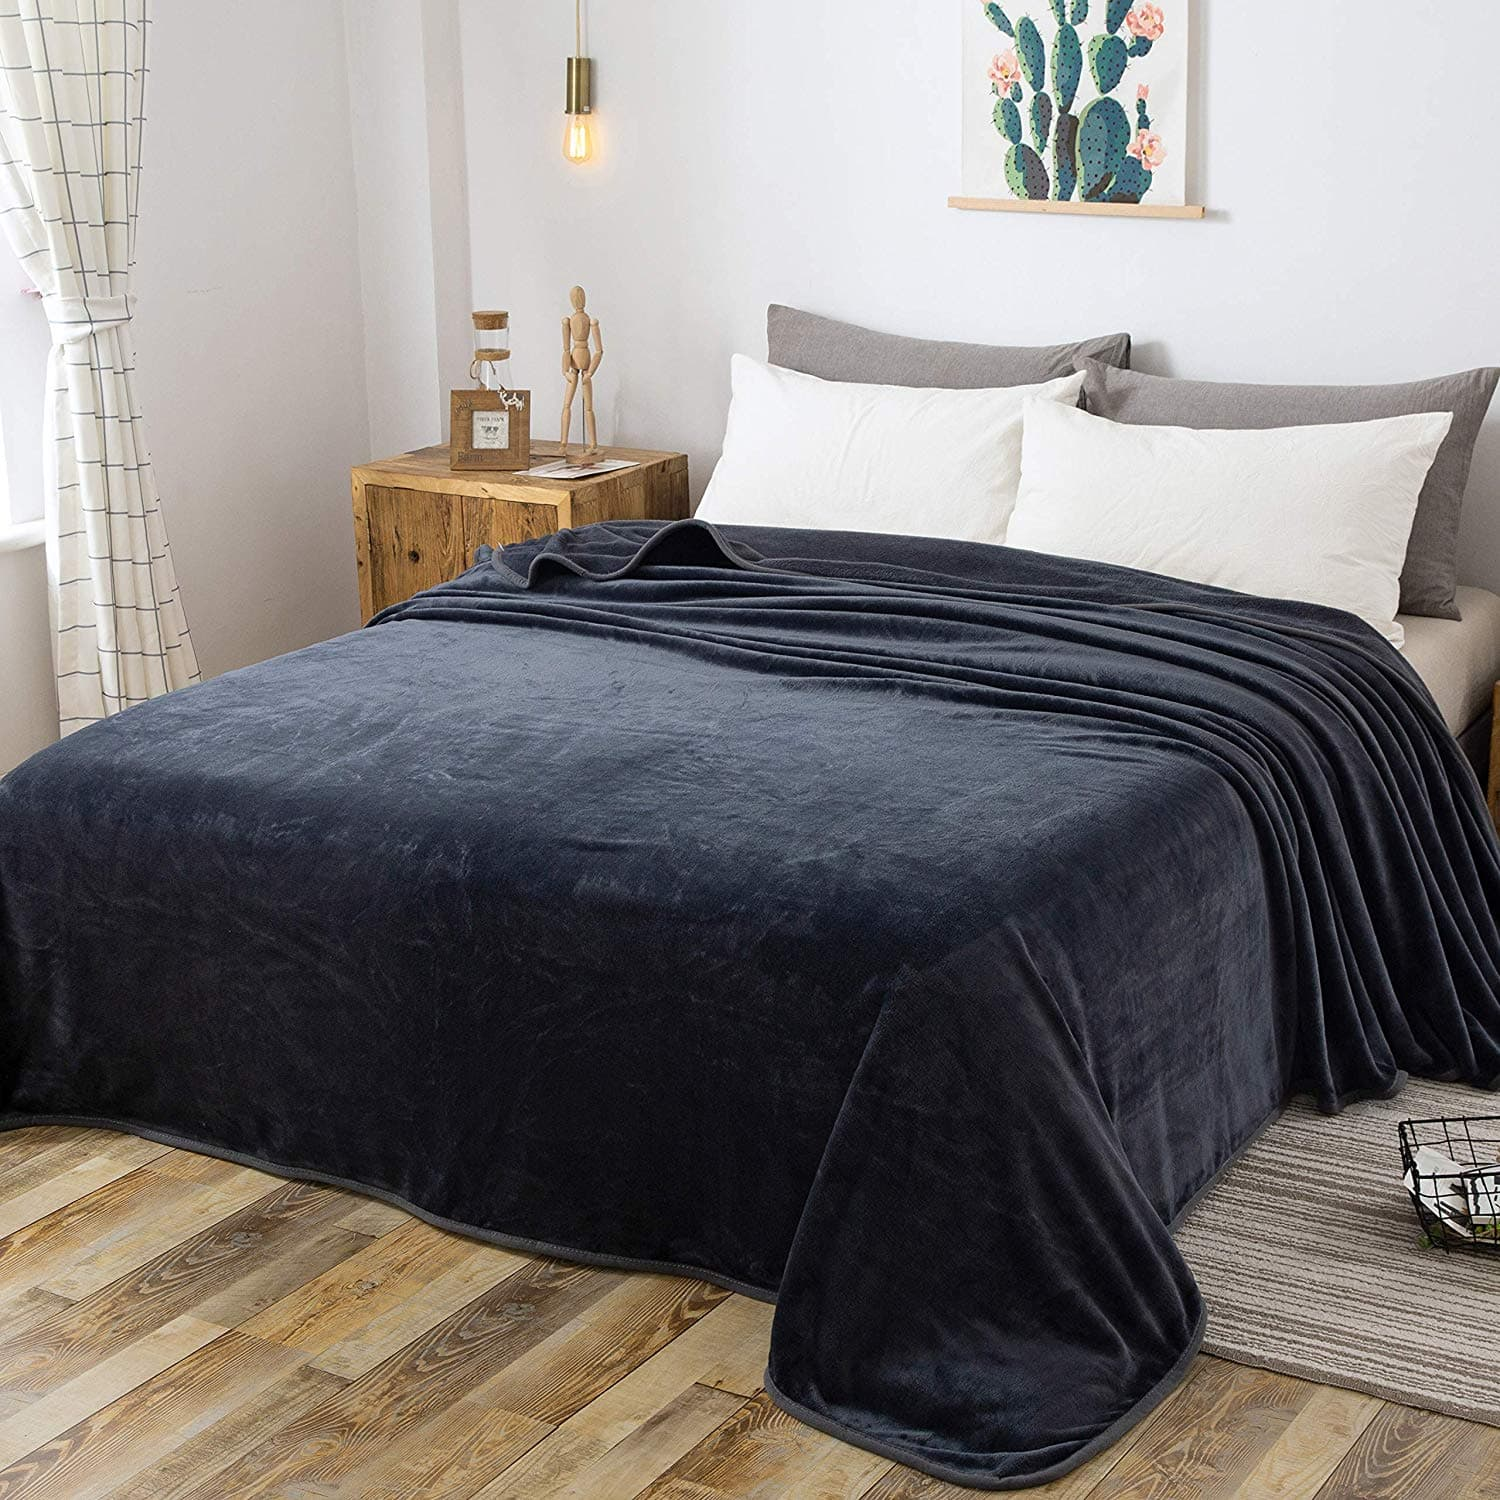 "Richave Fleece Queen Size 90"" x 90"" Dark Gray Blanket - Amazon $19.94"